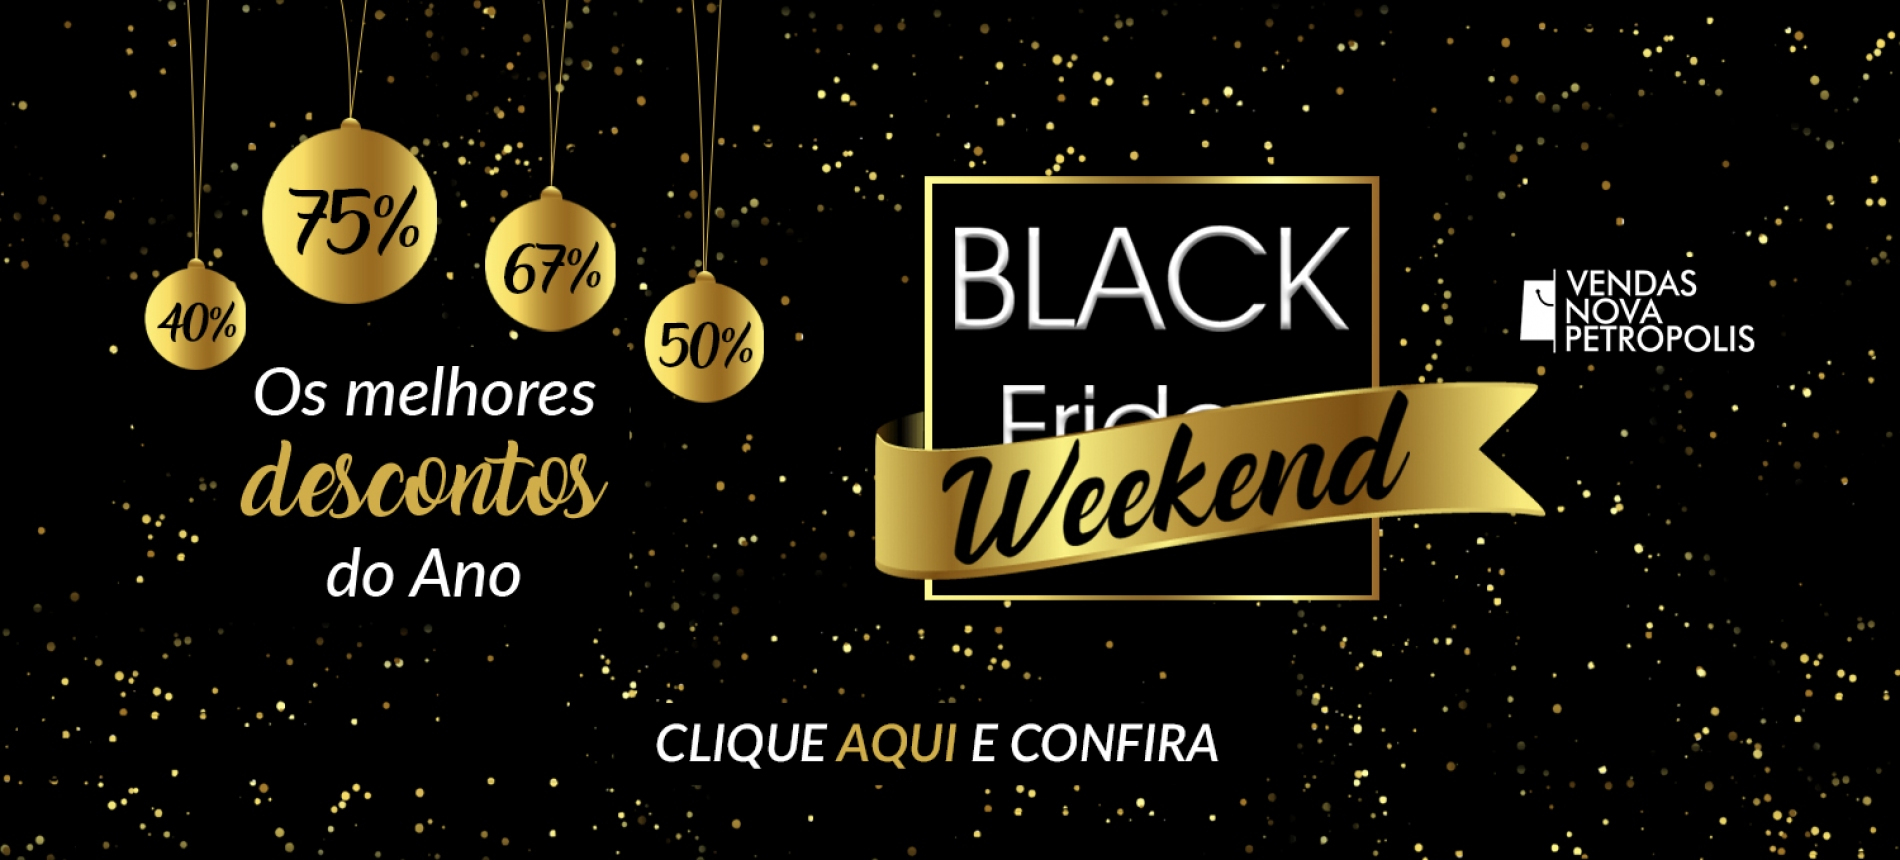 Slide-BLACK WEEKEND - melhores descontos do ano